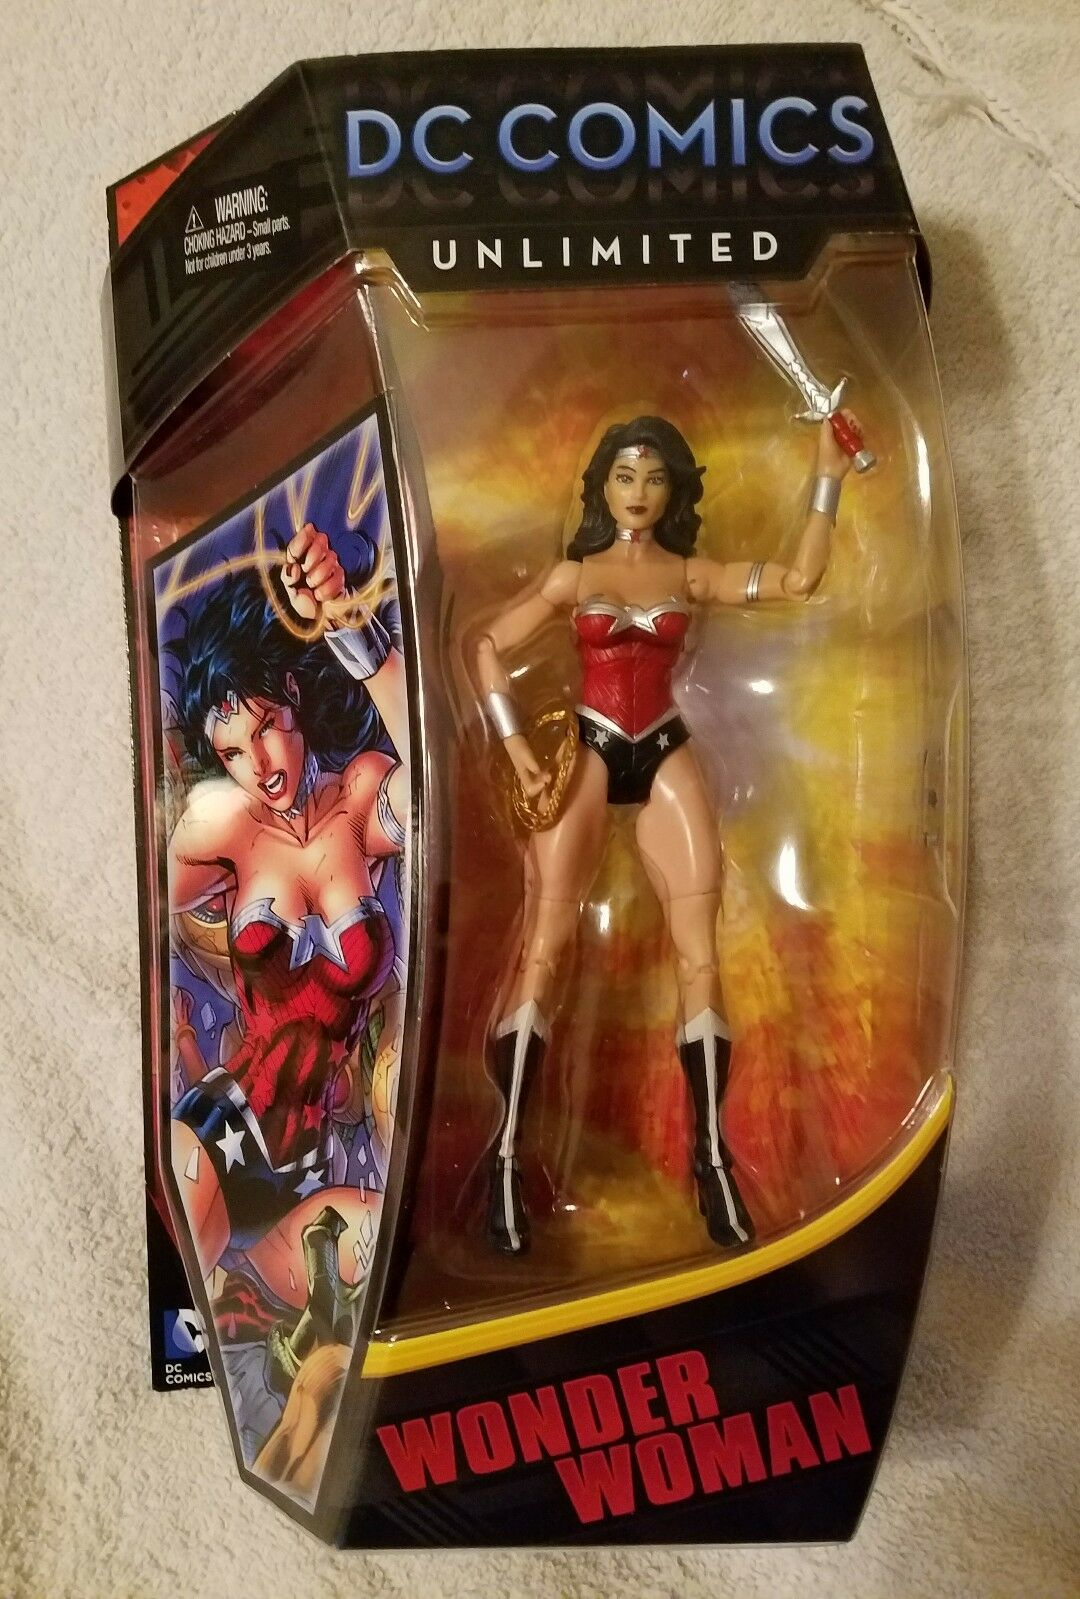 WONDER Damenschuhe DC Comics Unlimited 6 inch Action Figure